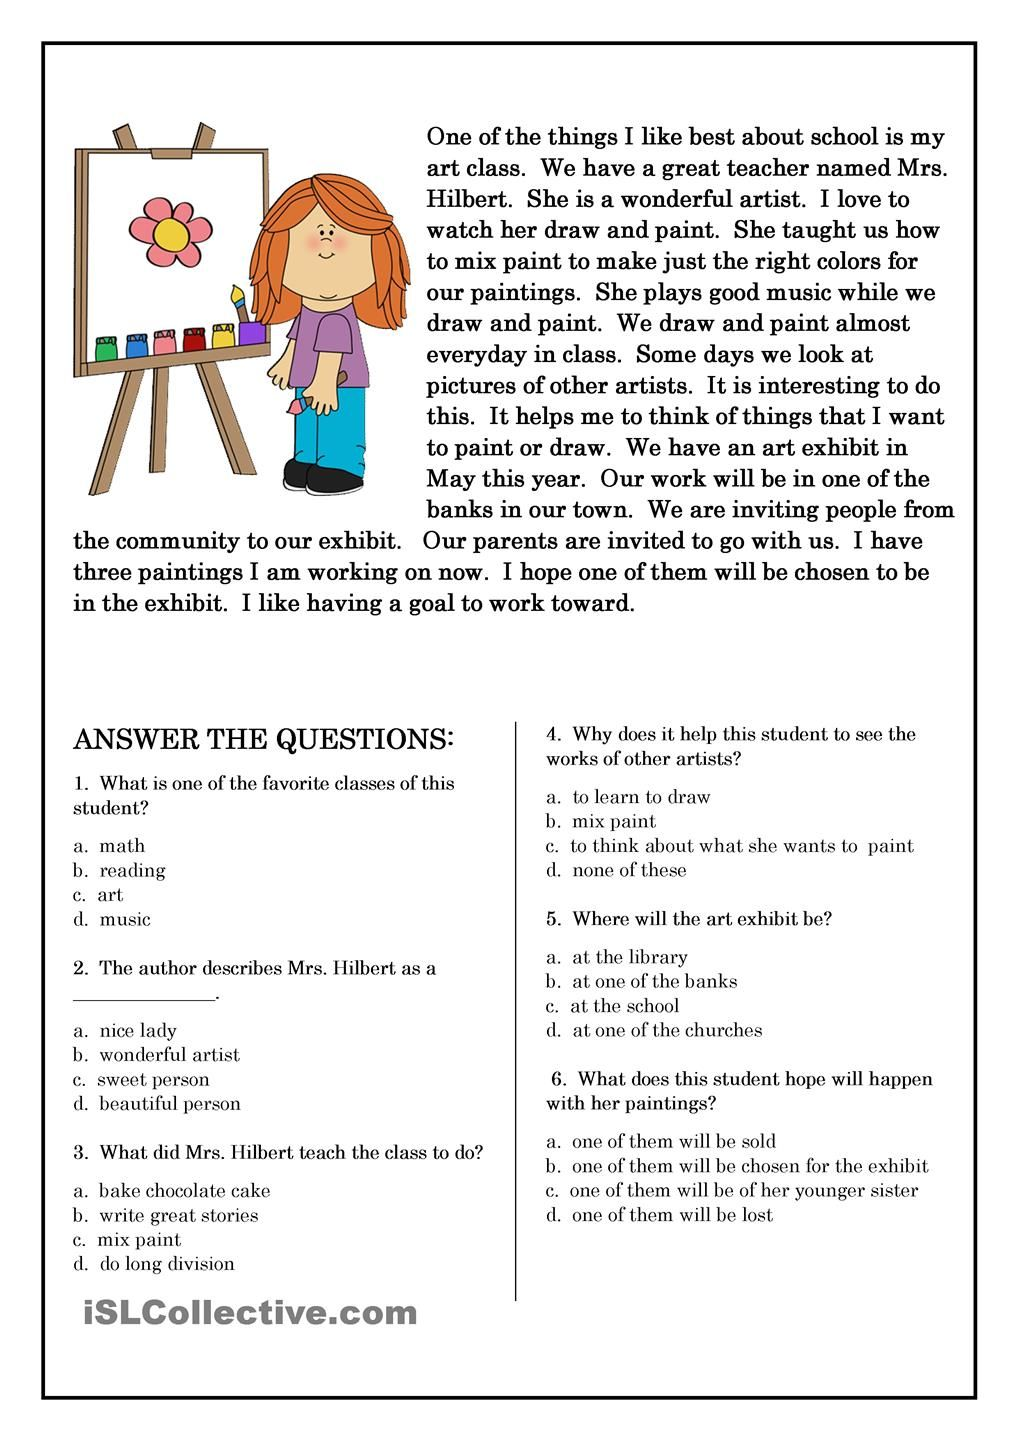 worksheet 4th Grade Reading Comprehension Printable Worksheets 78 best images about reading comprehension on pinterest simple sentences grade 1 and english short stories